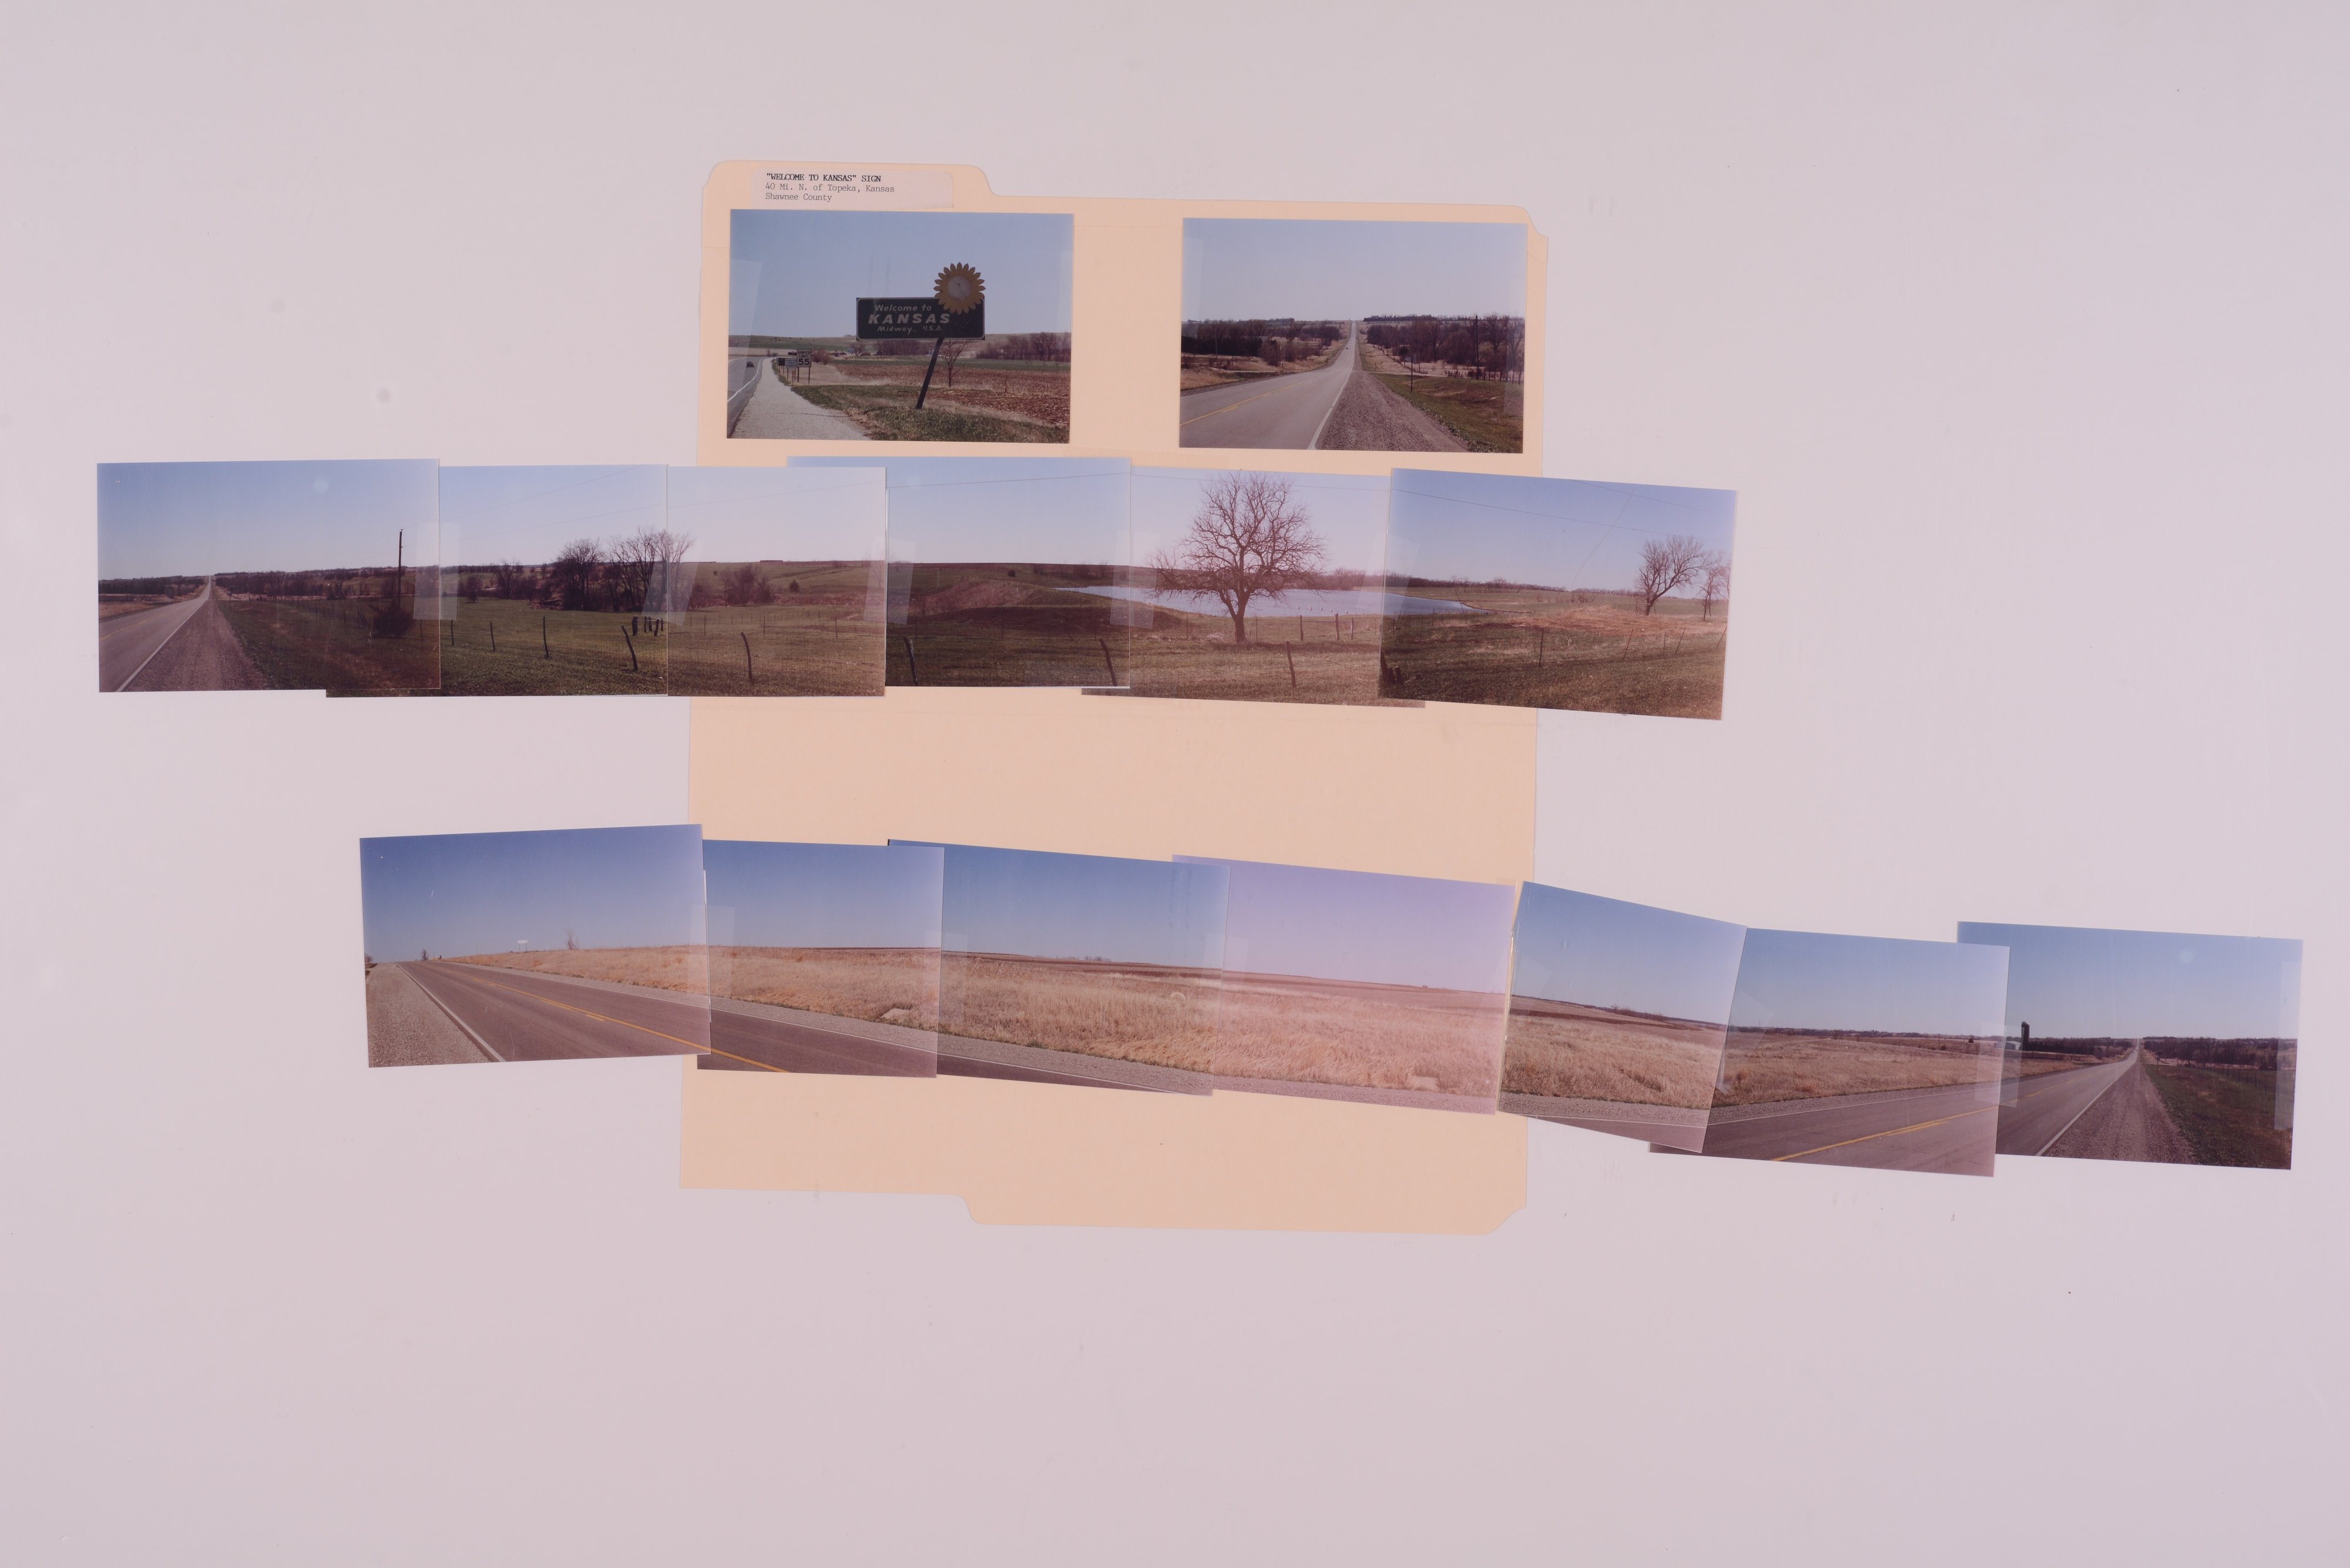 Kansas Film Commission site photographs, subject highway signs - hospitals - 6